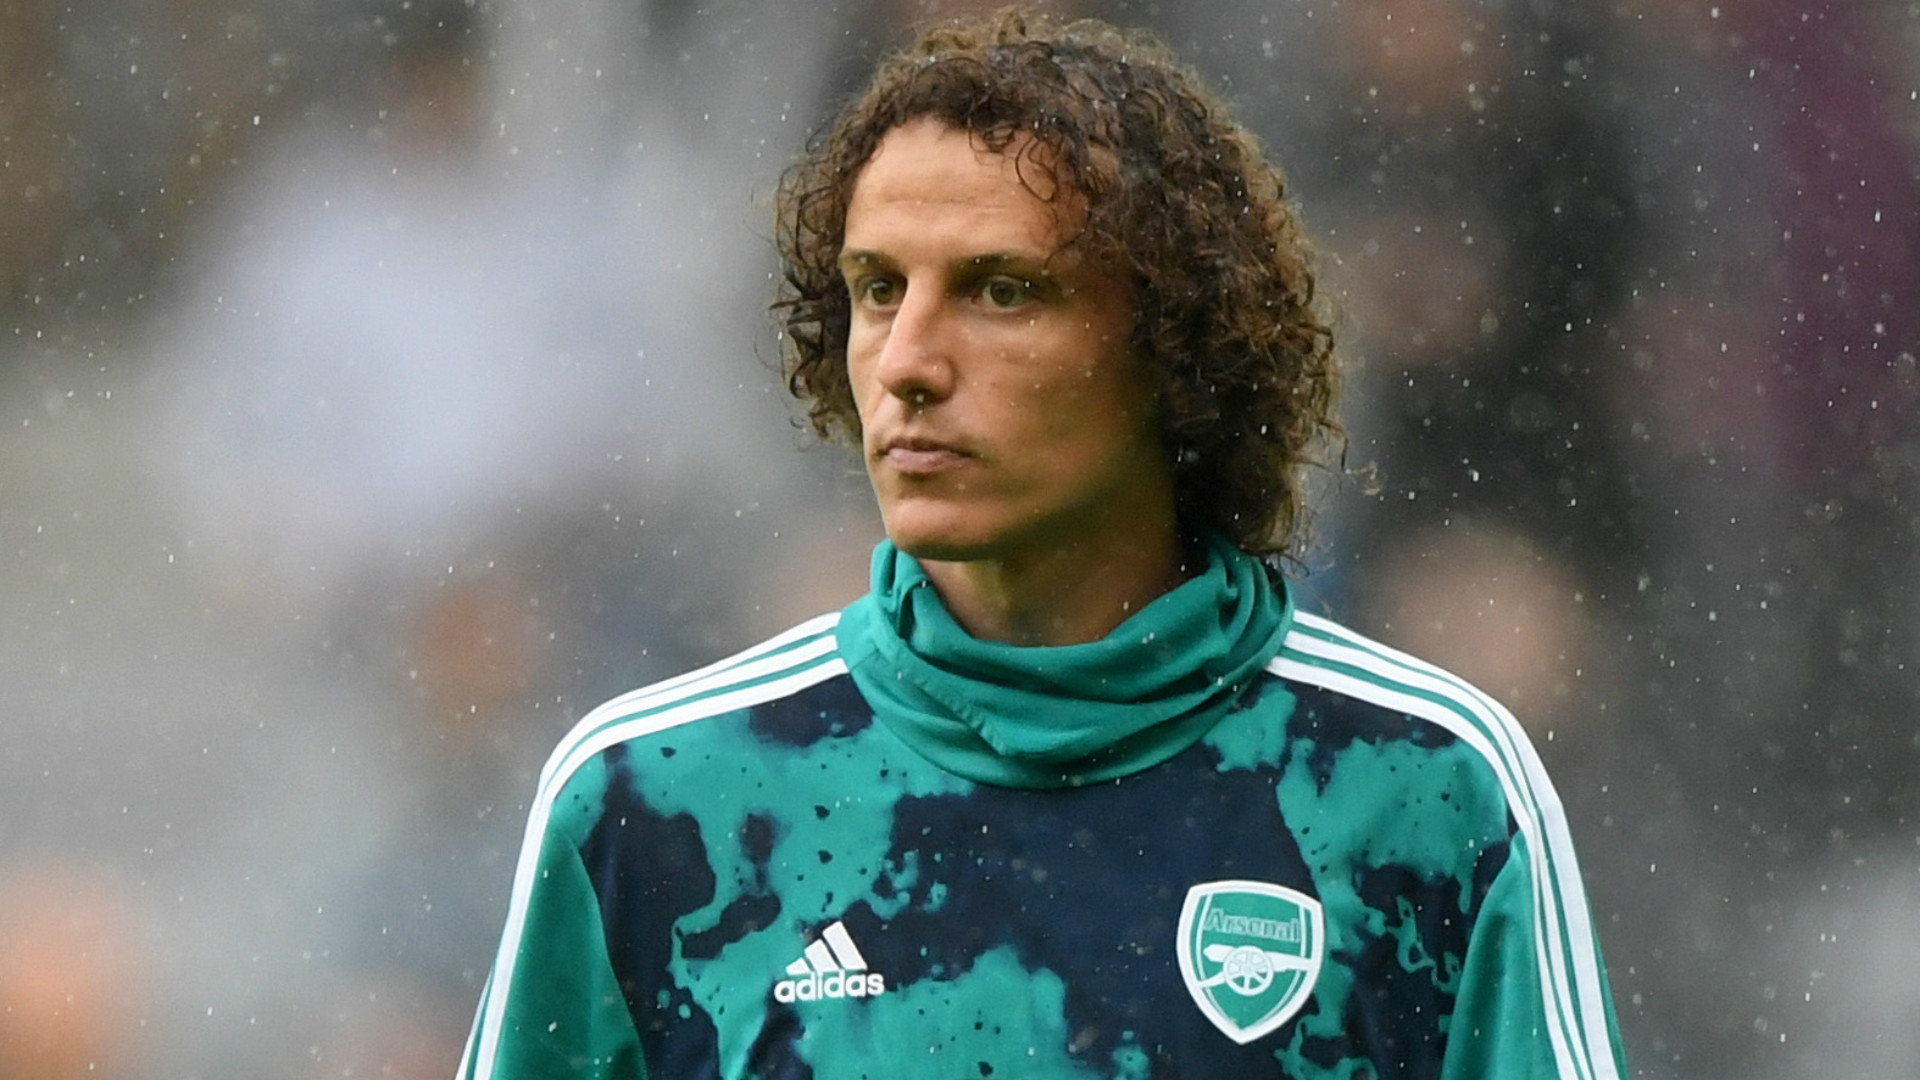 'We can fight for something big' - Trophy hungry Luiz calls on Arsenal to believe